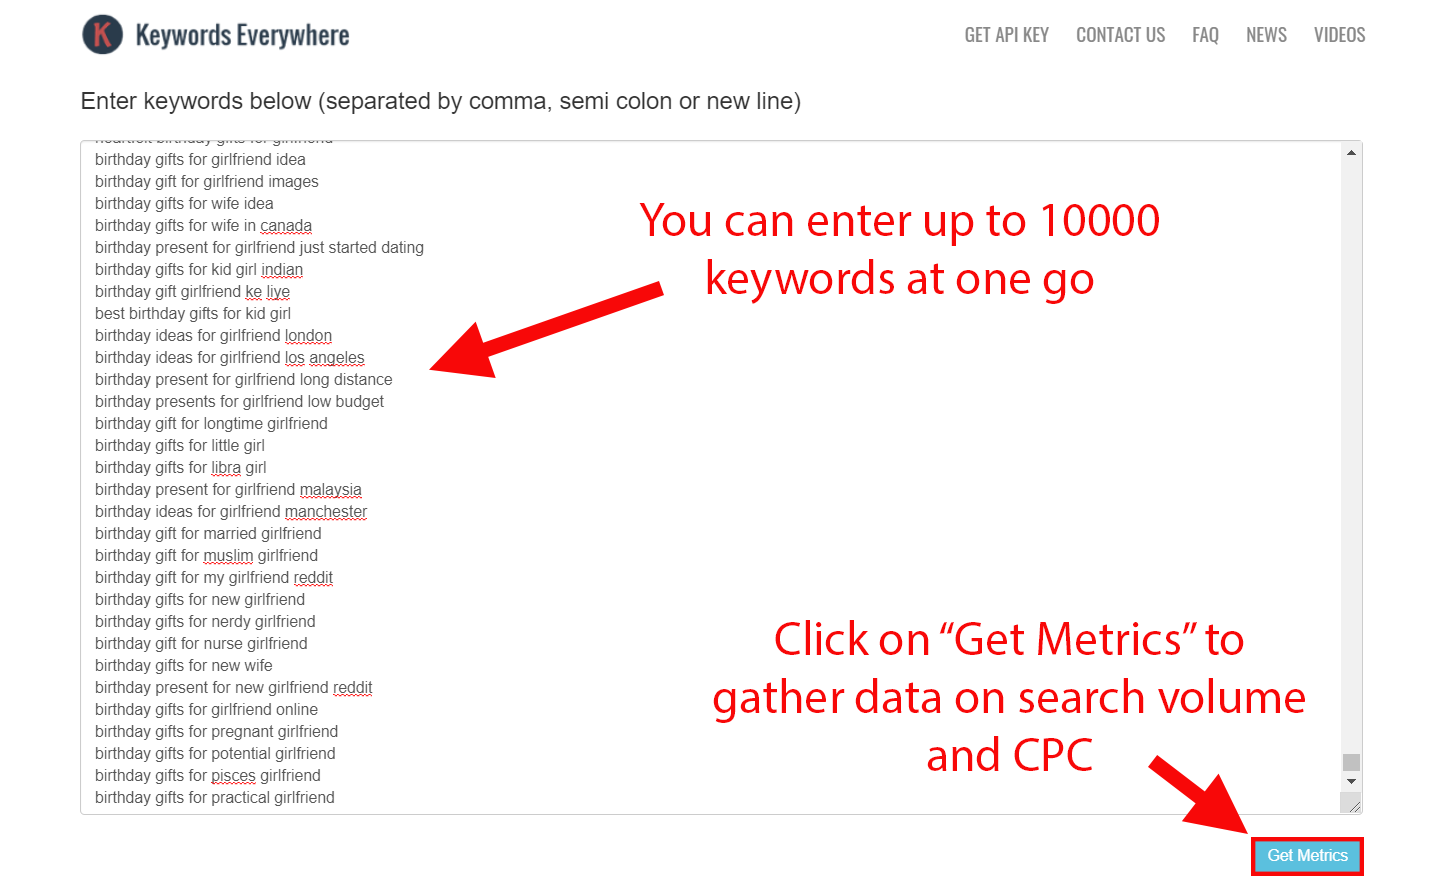 Collecting search volume using Keywords Everywhere